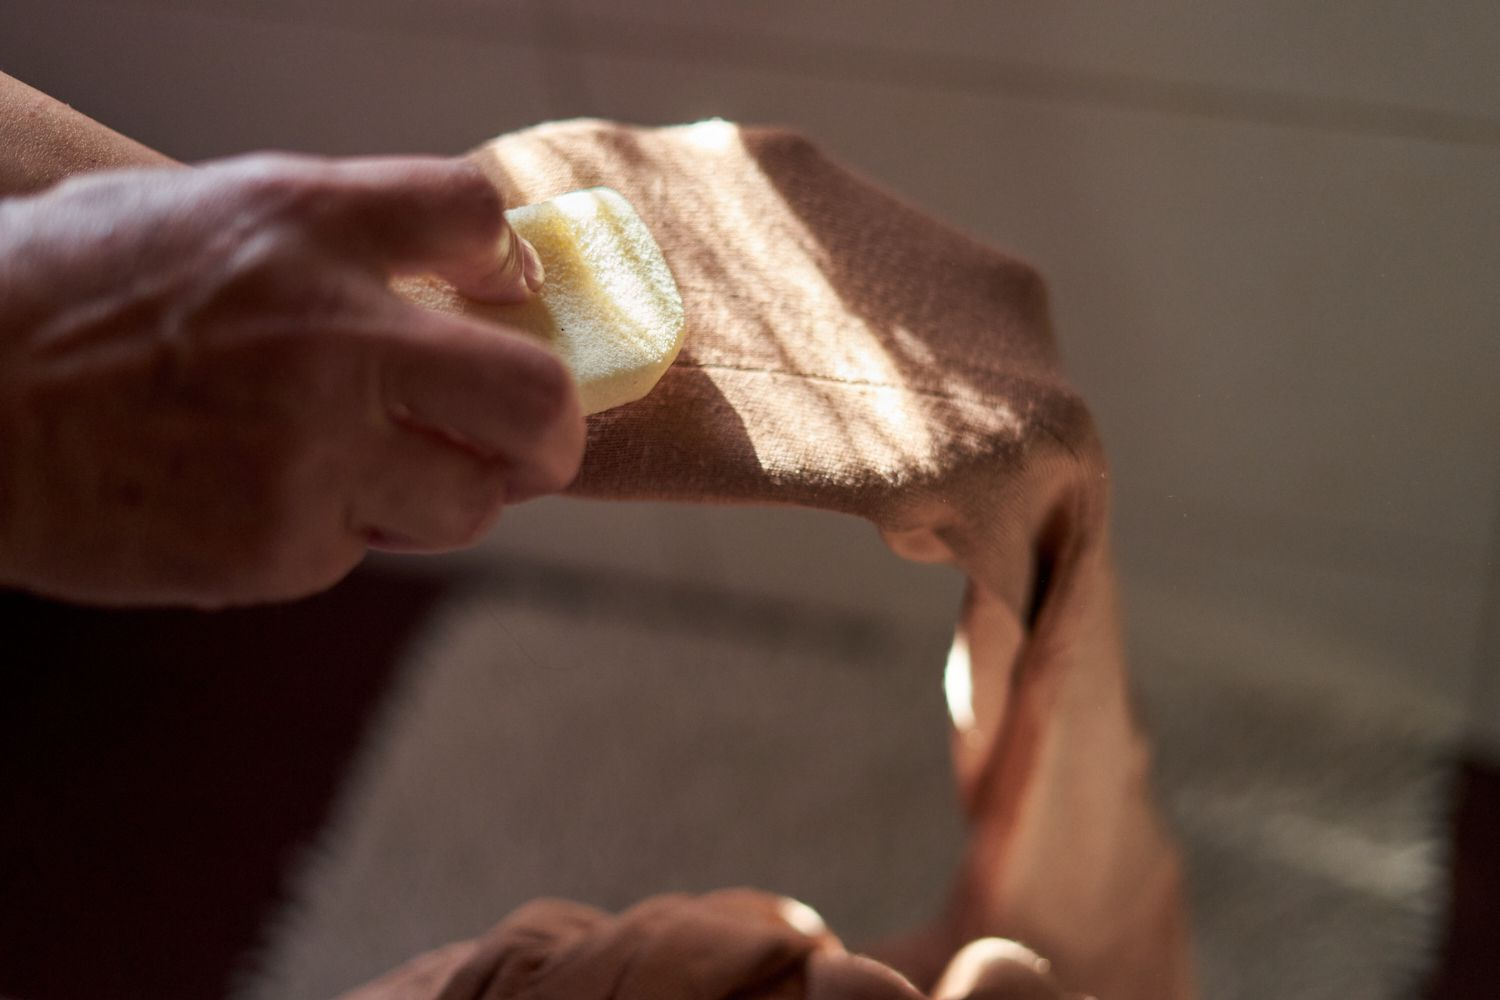 hands gently rub cream-colored pumice stone in arm of brown sweater to remove pills